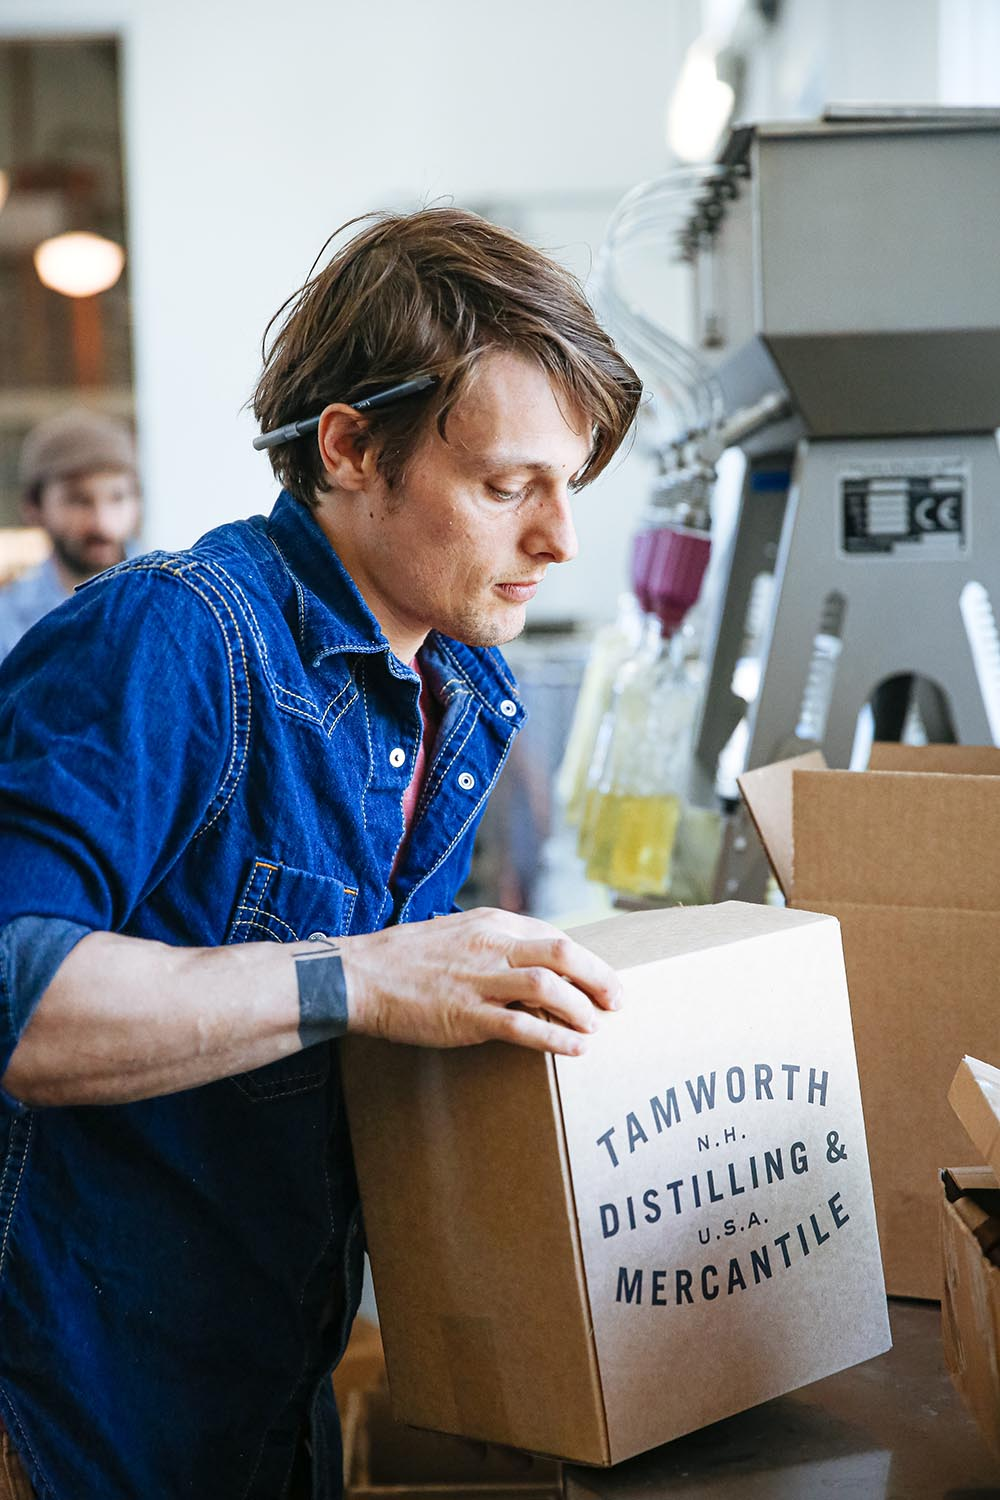 Jamie Oakes of Tamworth Distilling, packing cases of spirits on the bottling line